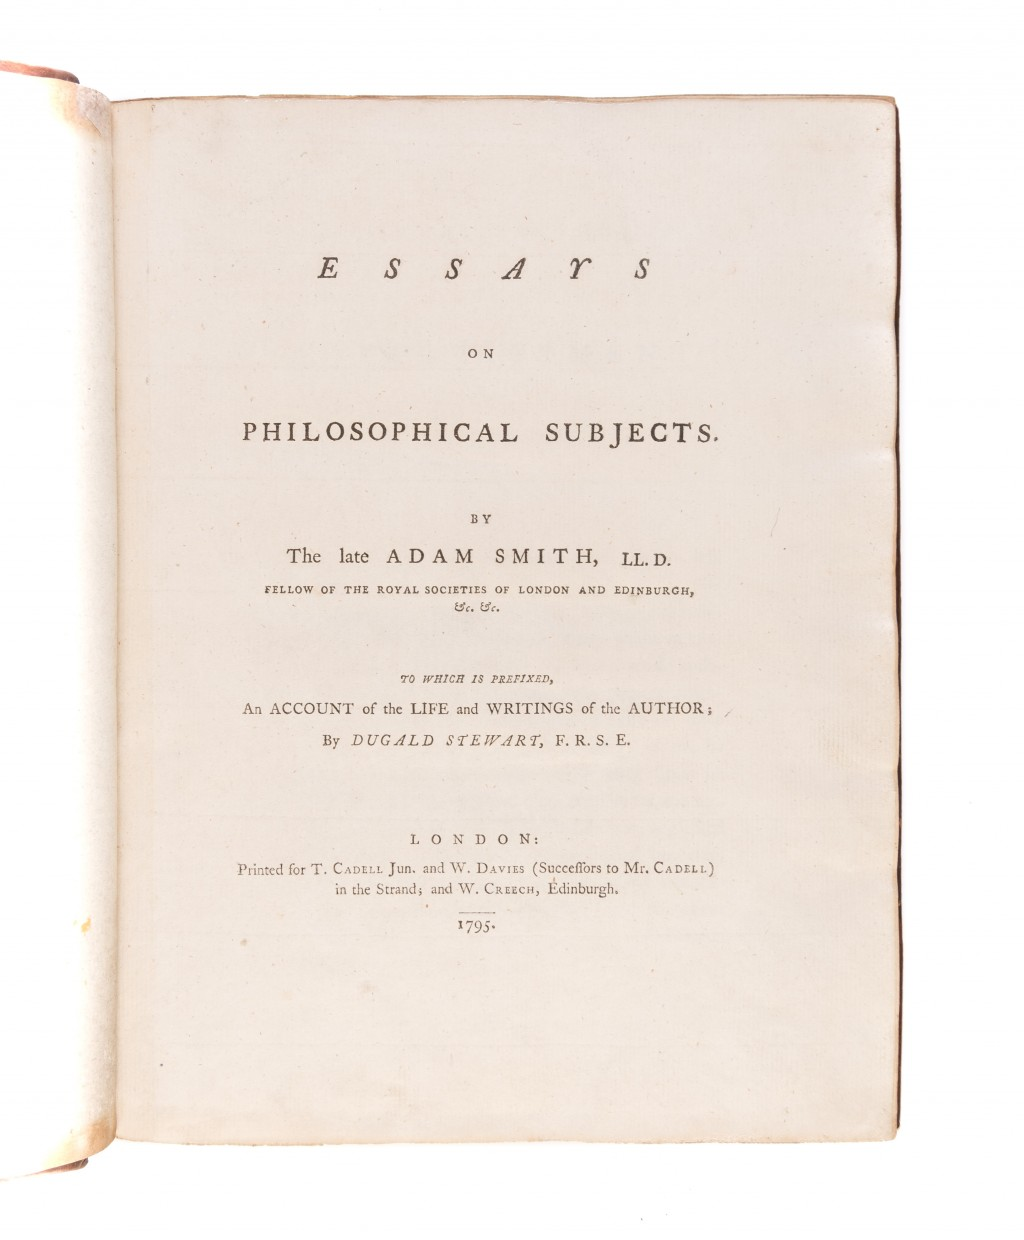 004 Essays On Philosophical Subjects 55036 01 Essay Best Summary Adam Smith Large